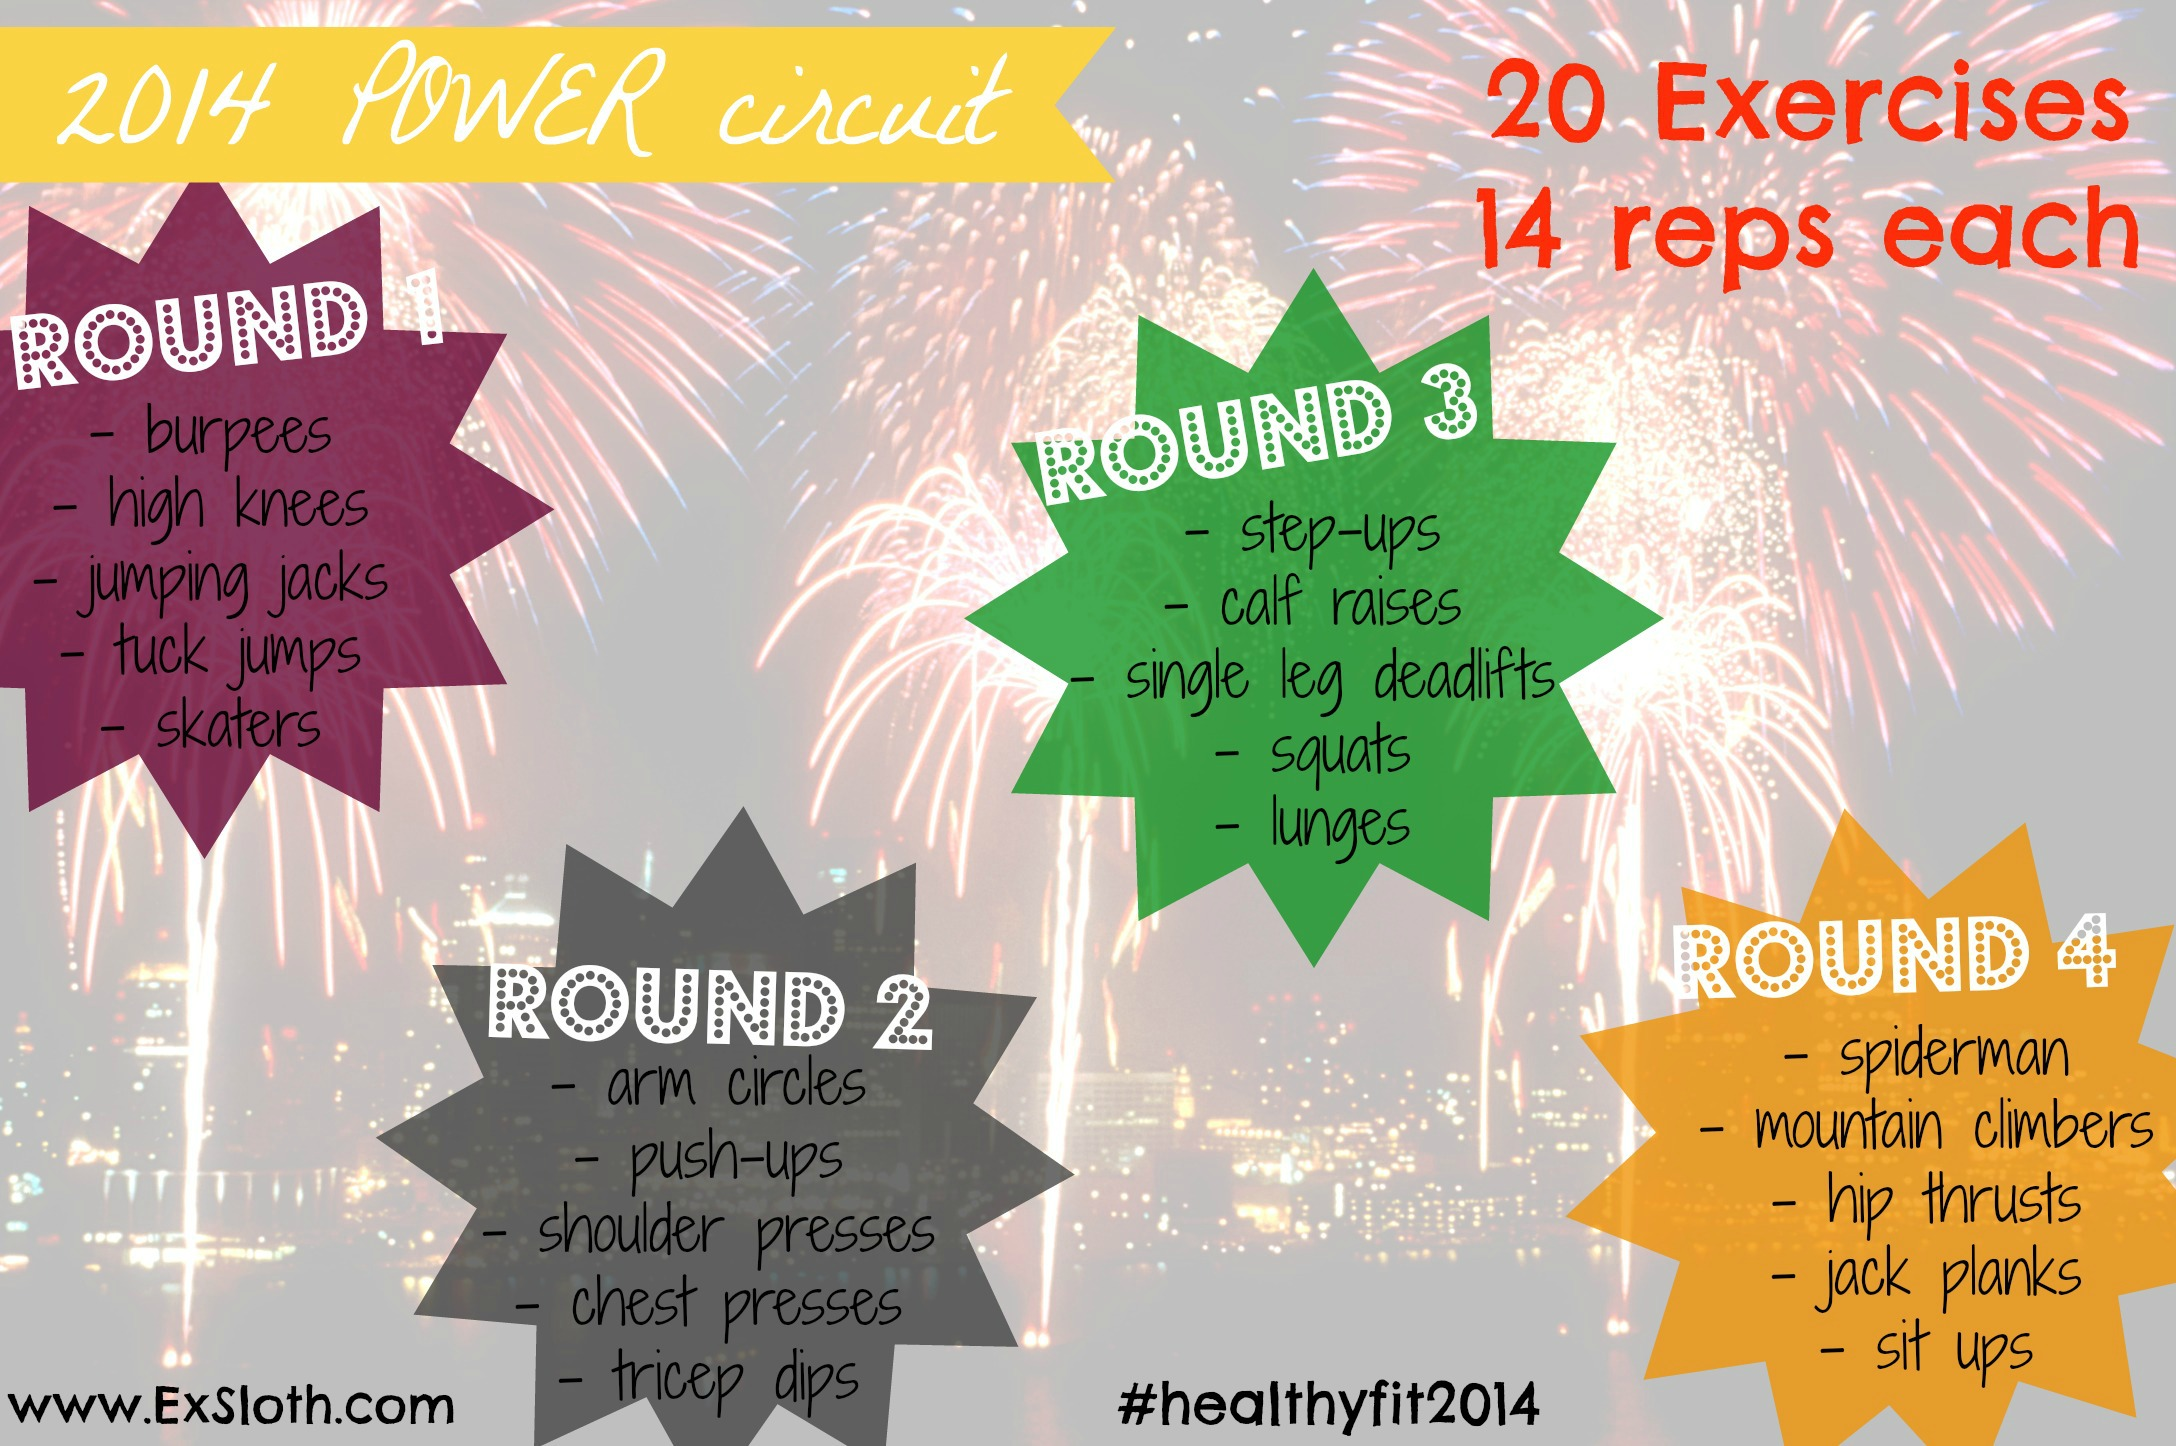 2014 Power Circuit Workout Goodbye 2013 Diary Of An Exsloth Training Exercises No Equipment Body Weight Via